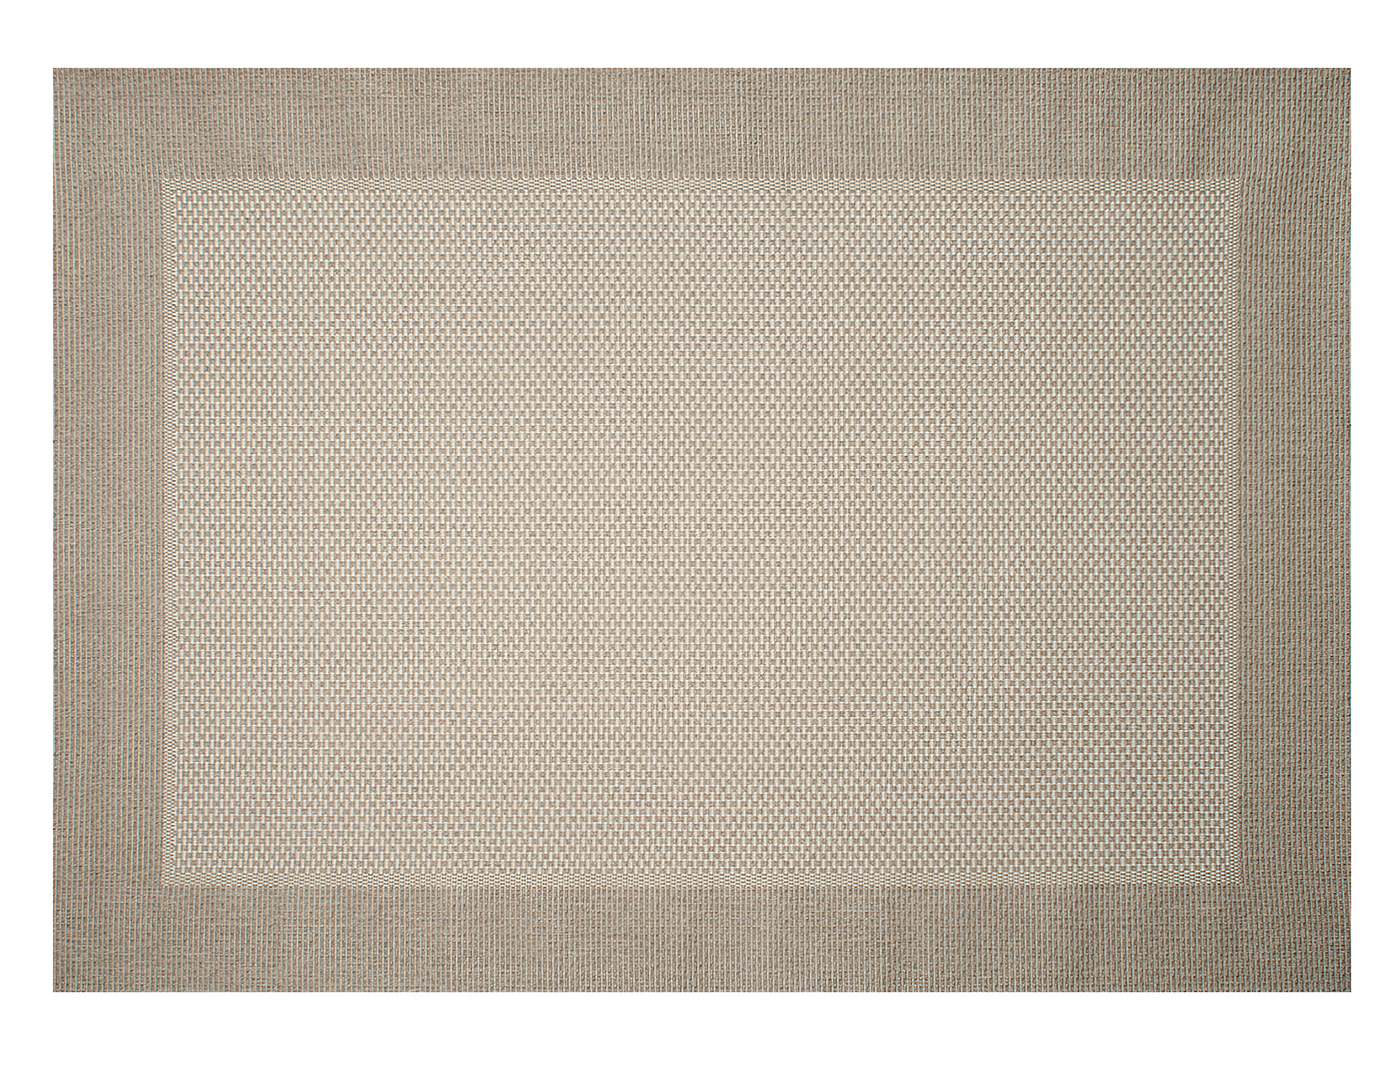 "Savannah Cottonwood 7'10""x 10' Patio Area Rug"